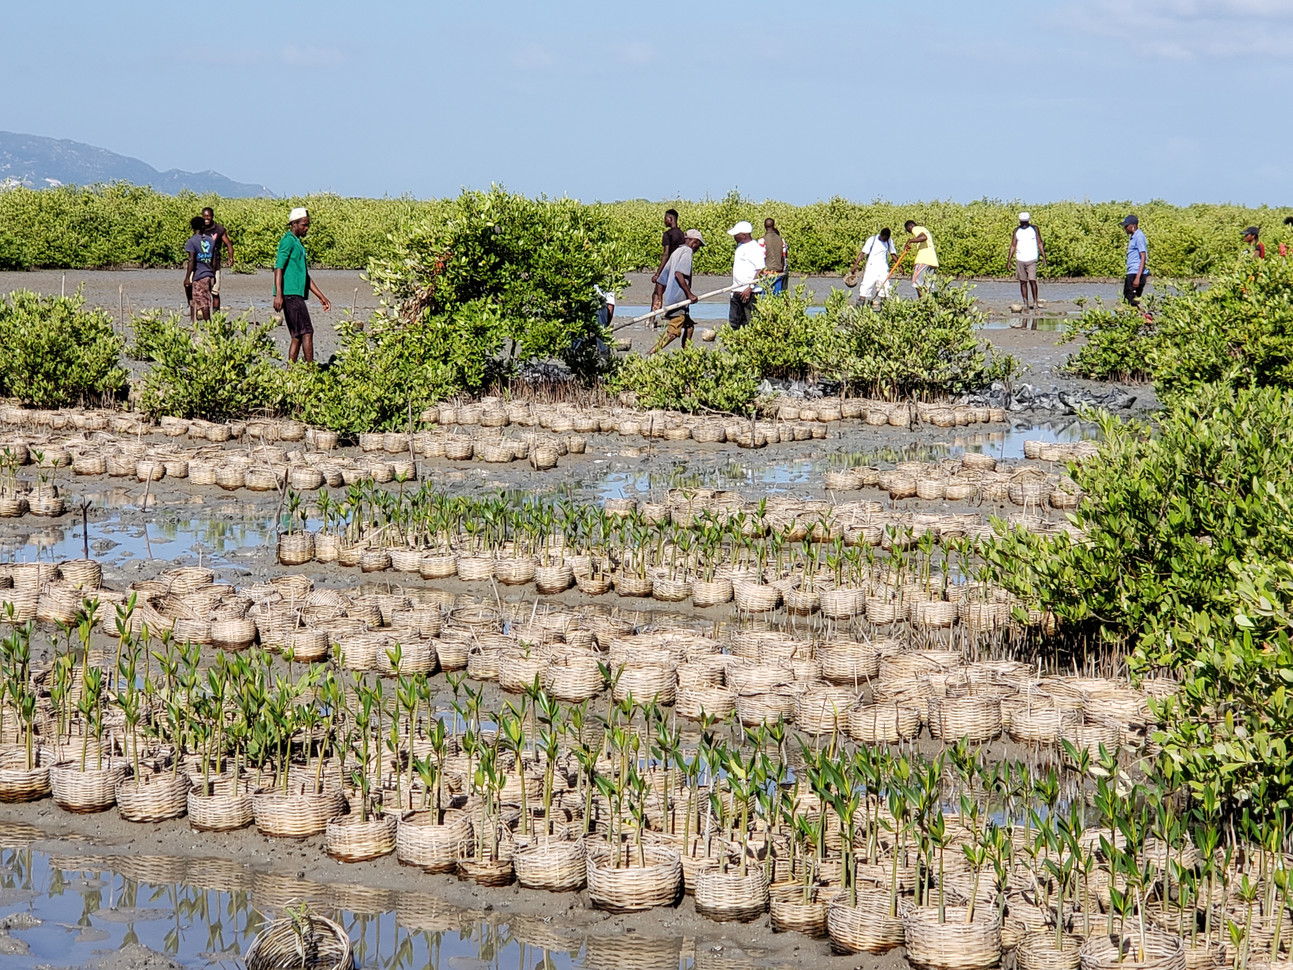 5 mangrove nurseries established in 4 communities with over 100,000 plants.